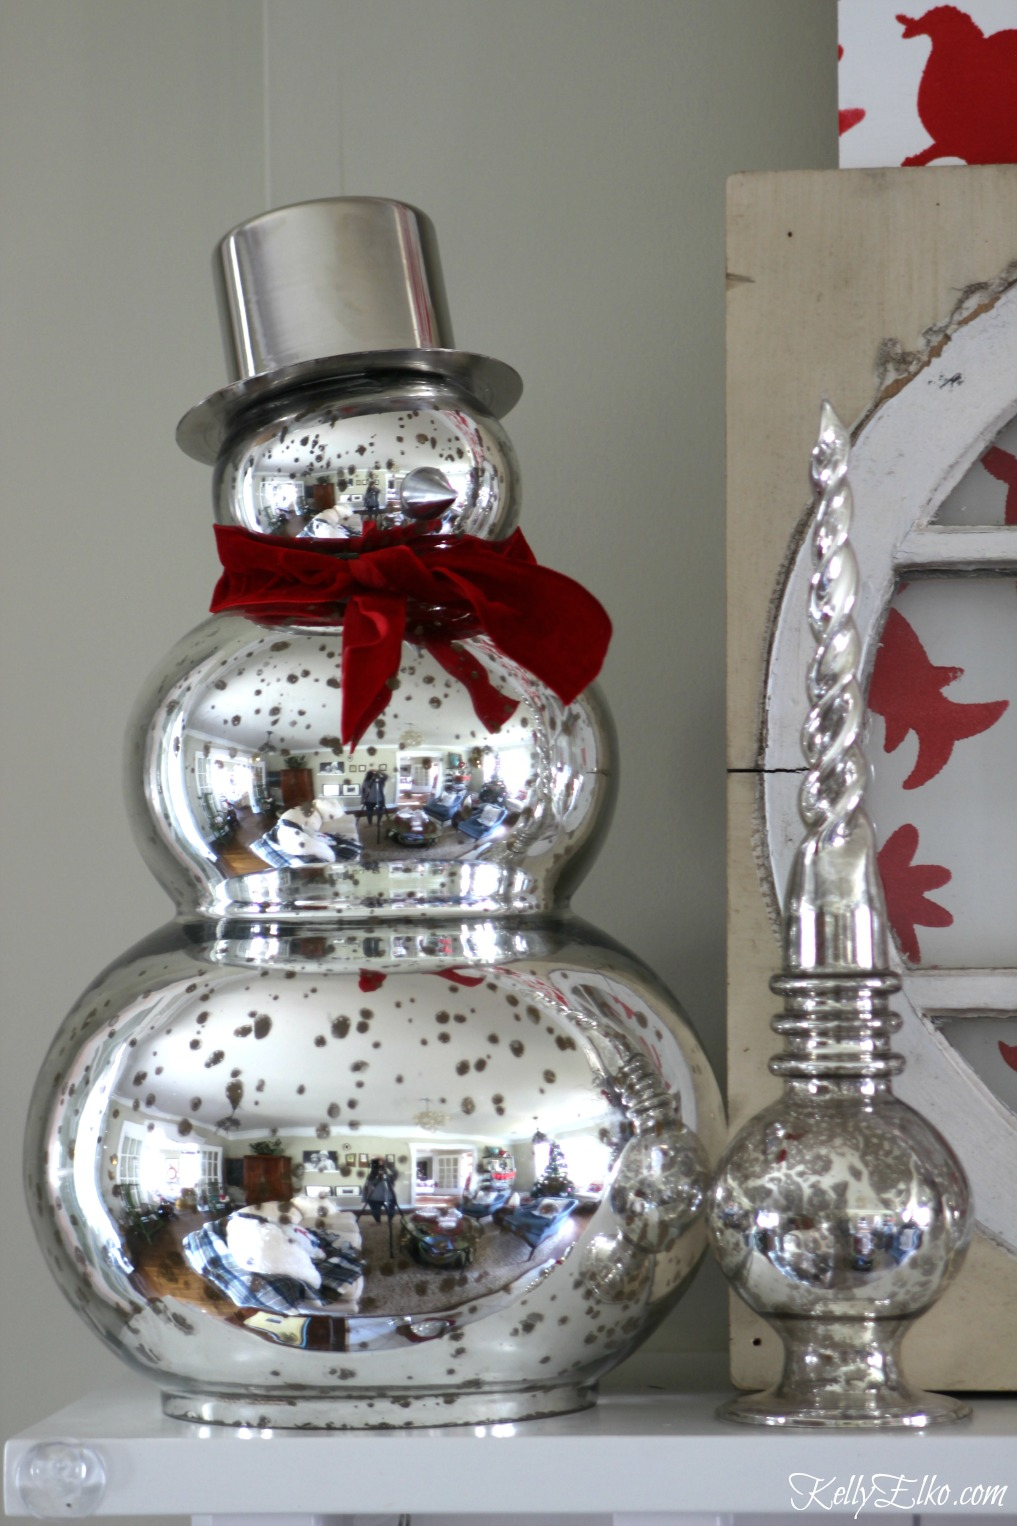 Mercury glass snowman on a festive Christmas mantel kellyelko.com